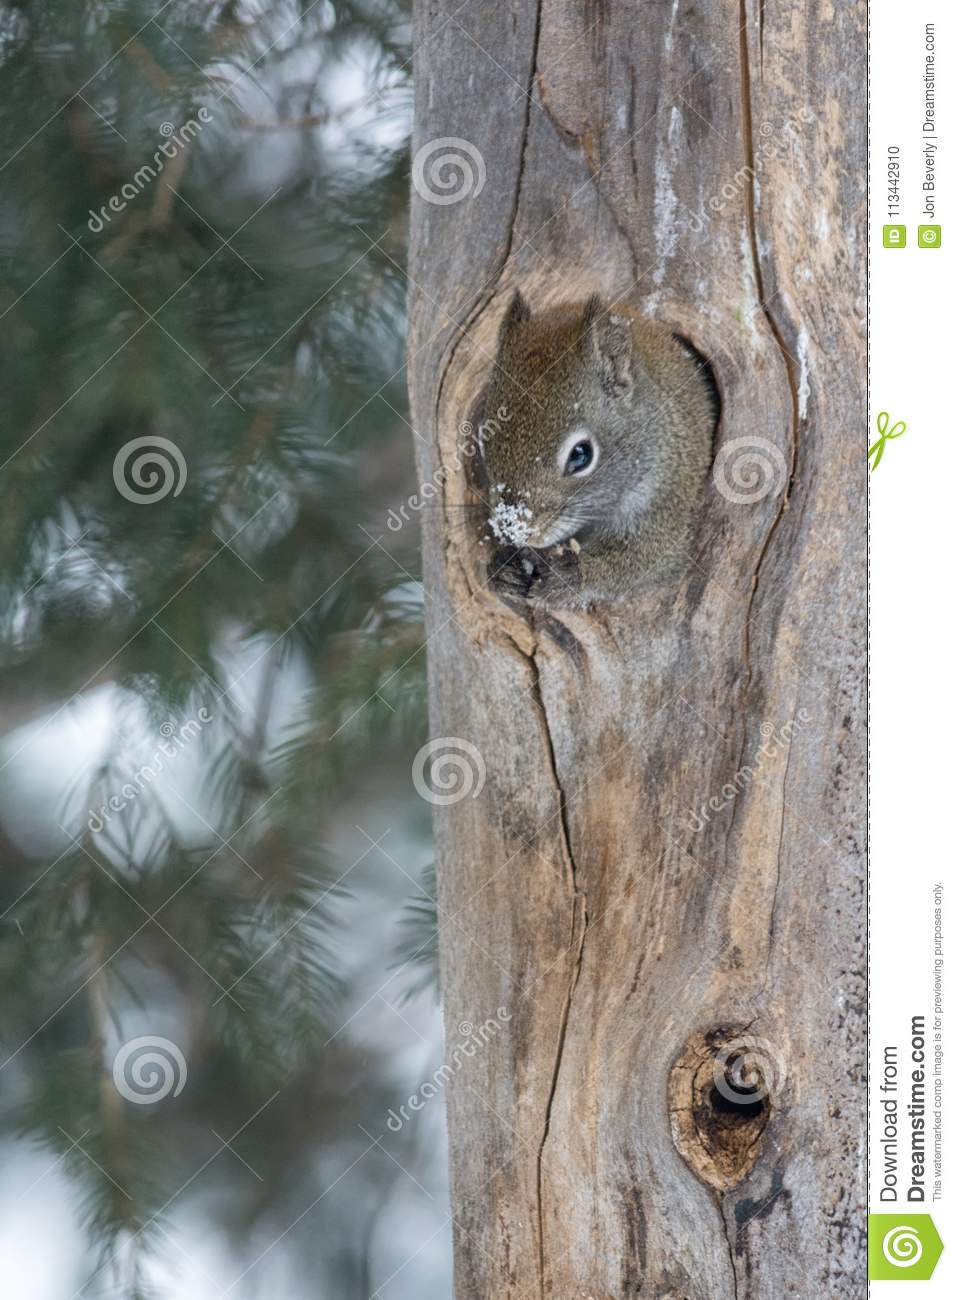 Squirrel with snowy nose sticking out of hole in tree trunk